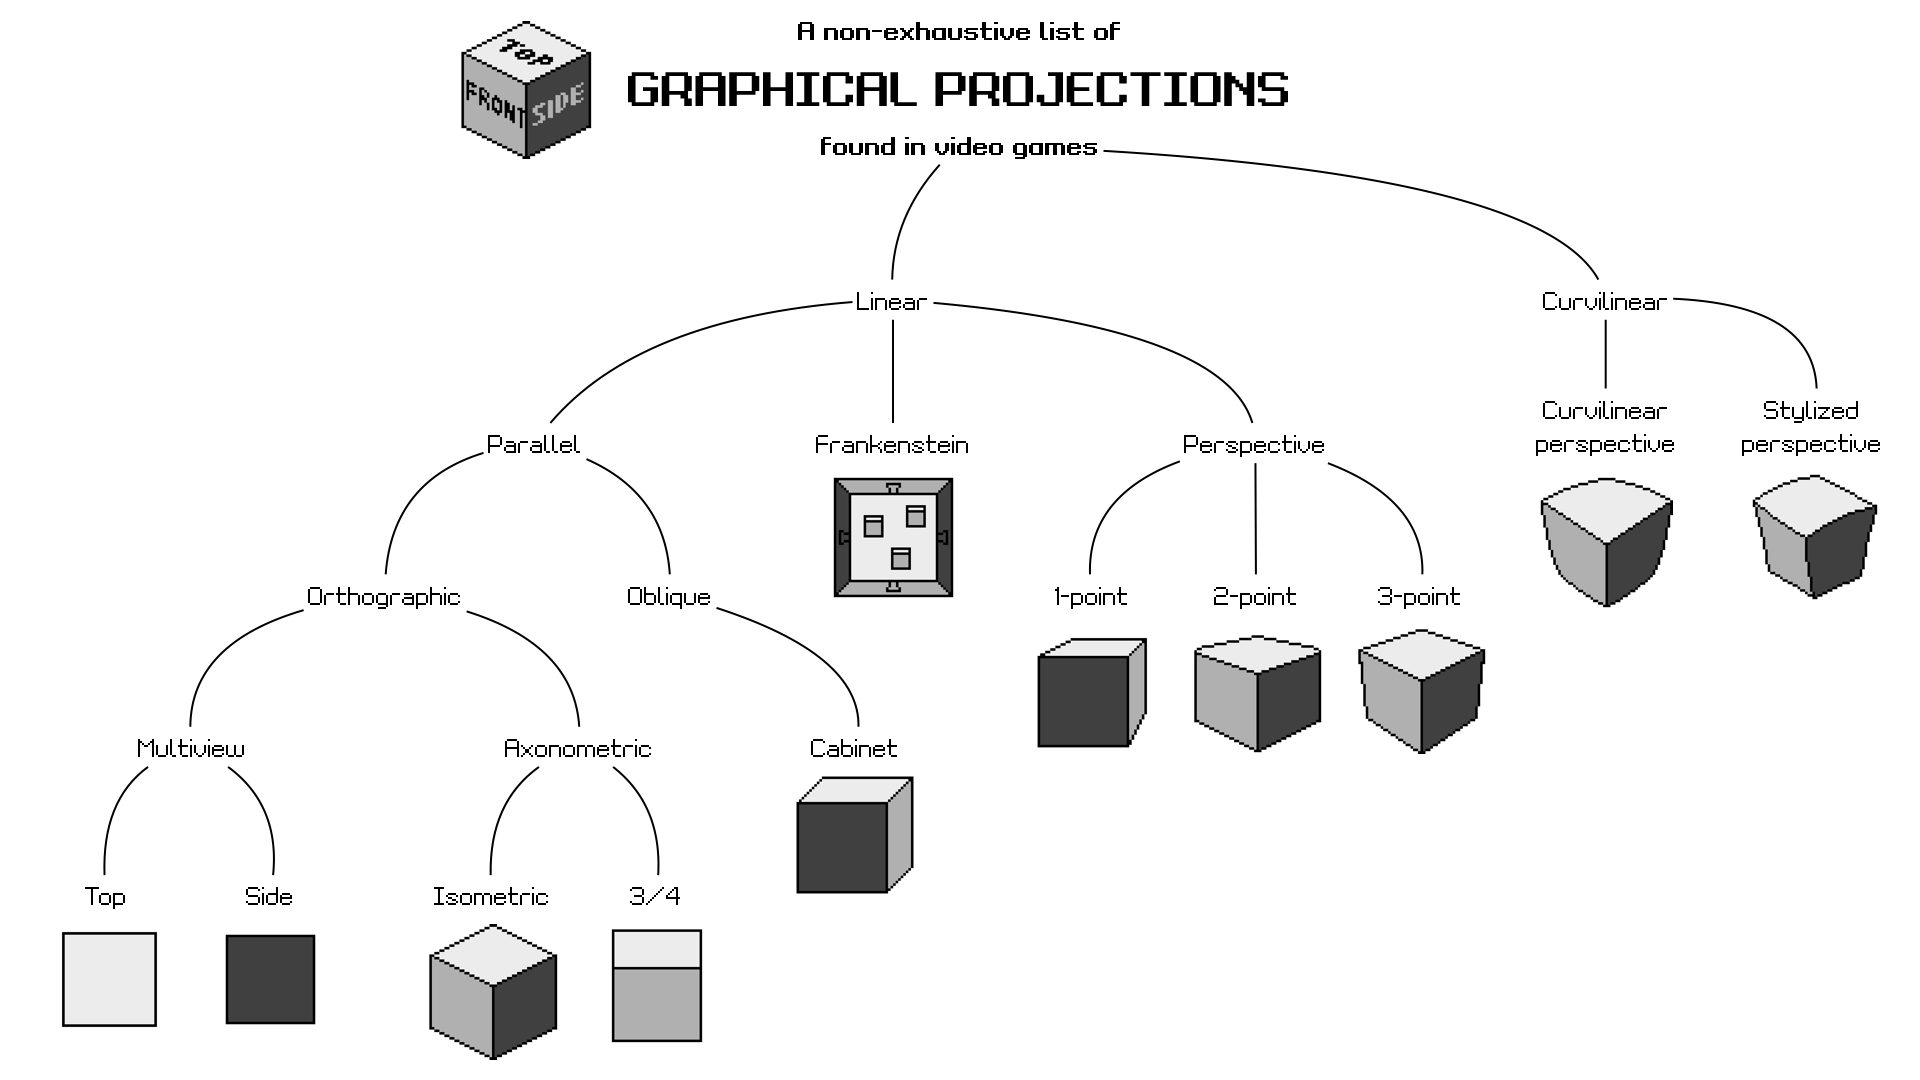 Game Developers Guide To Graphical Projections With Video Mad Max Engine Diagram Here Is The Big Picture View